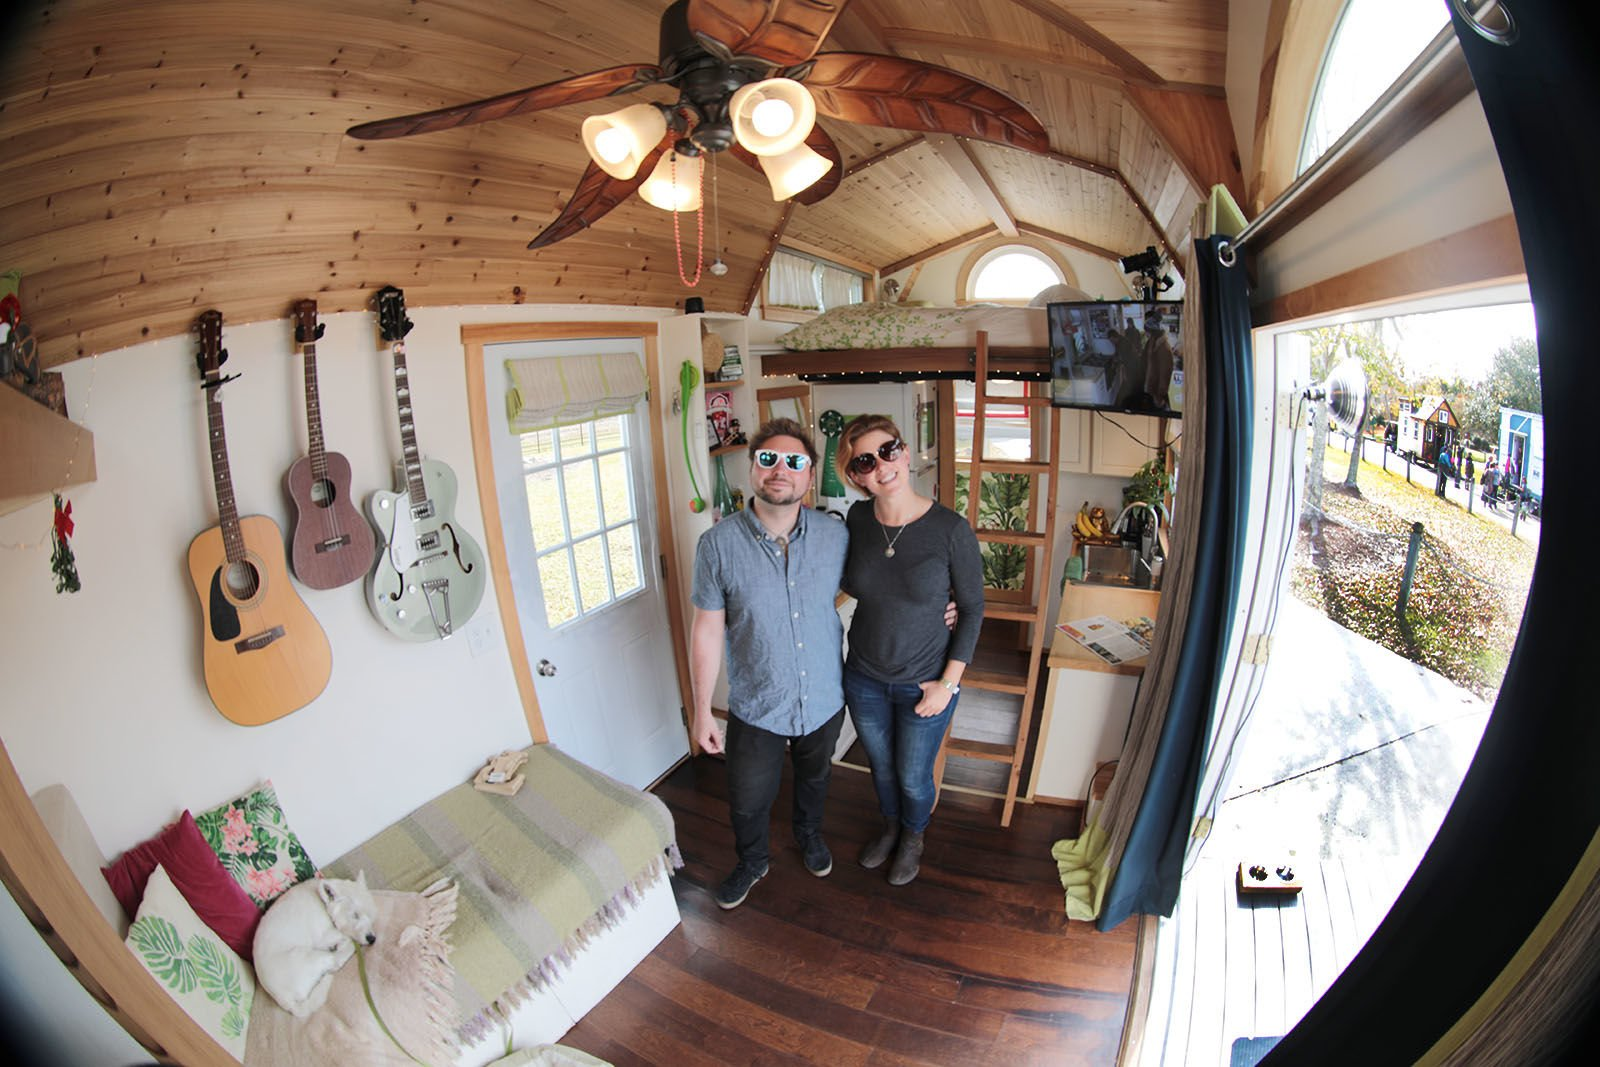 The small of it all: Tiny-house enthusiasts gather at Slidell festival